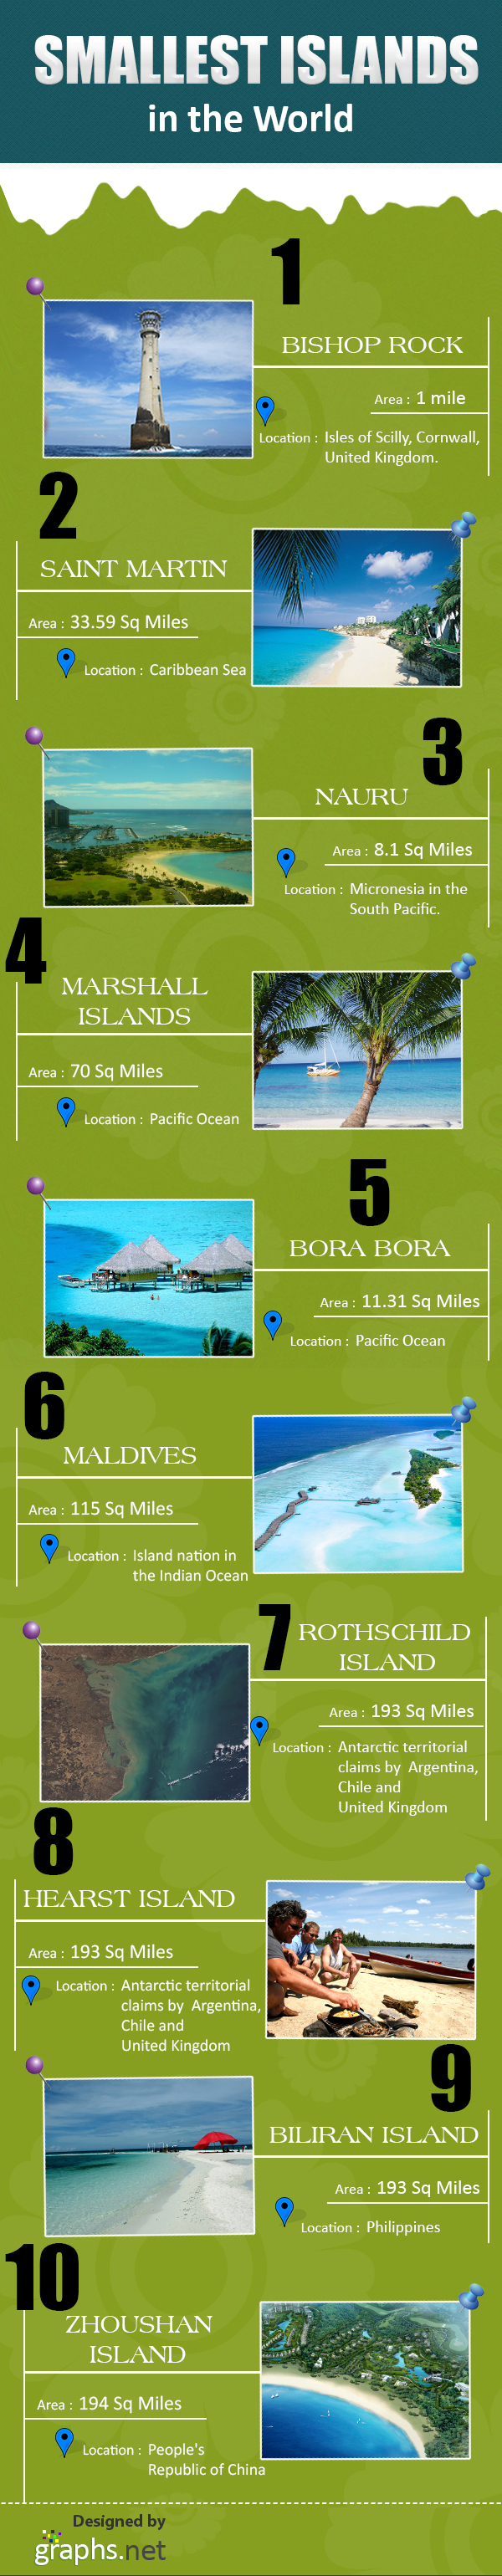 smallest islands in the World